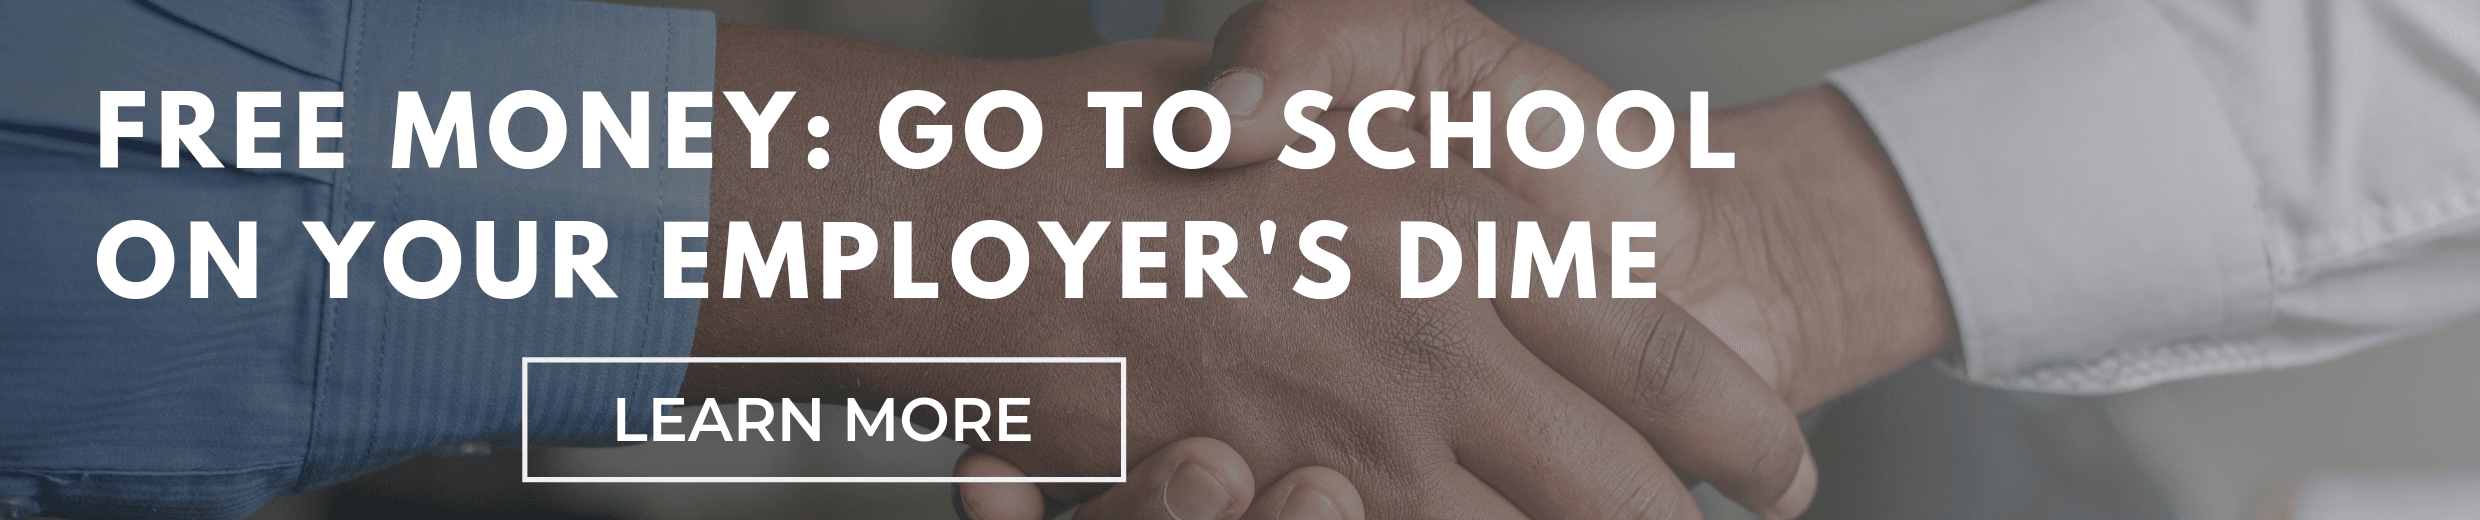 Free Money: Go Back to School on Your Employer's Dime